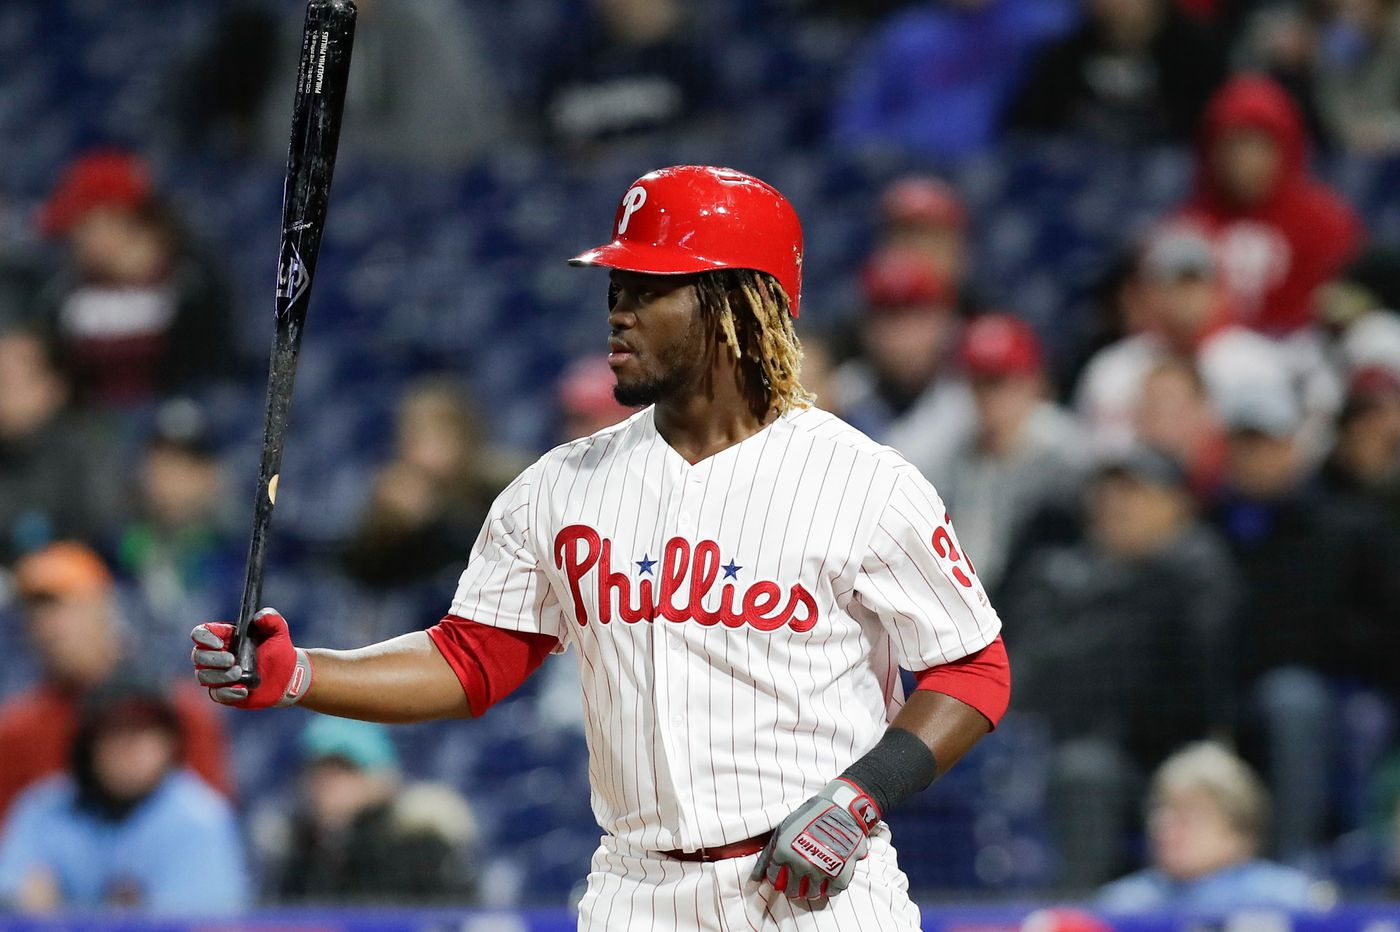 Phillies' Odubel Herrera placed on leave by MLB after arrest for domestic violence charge